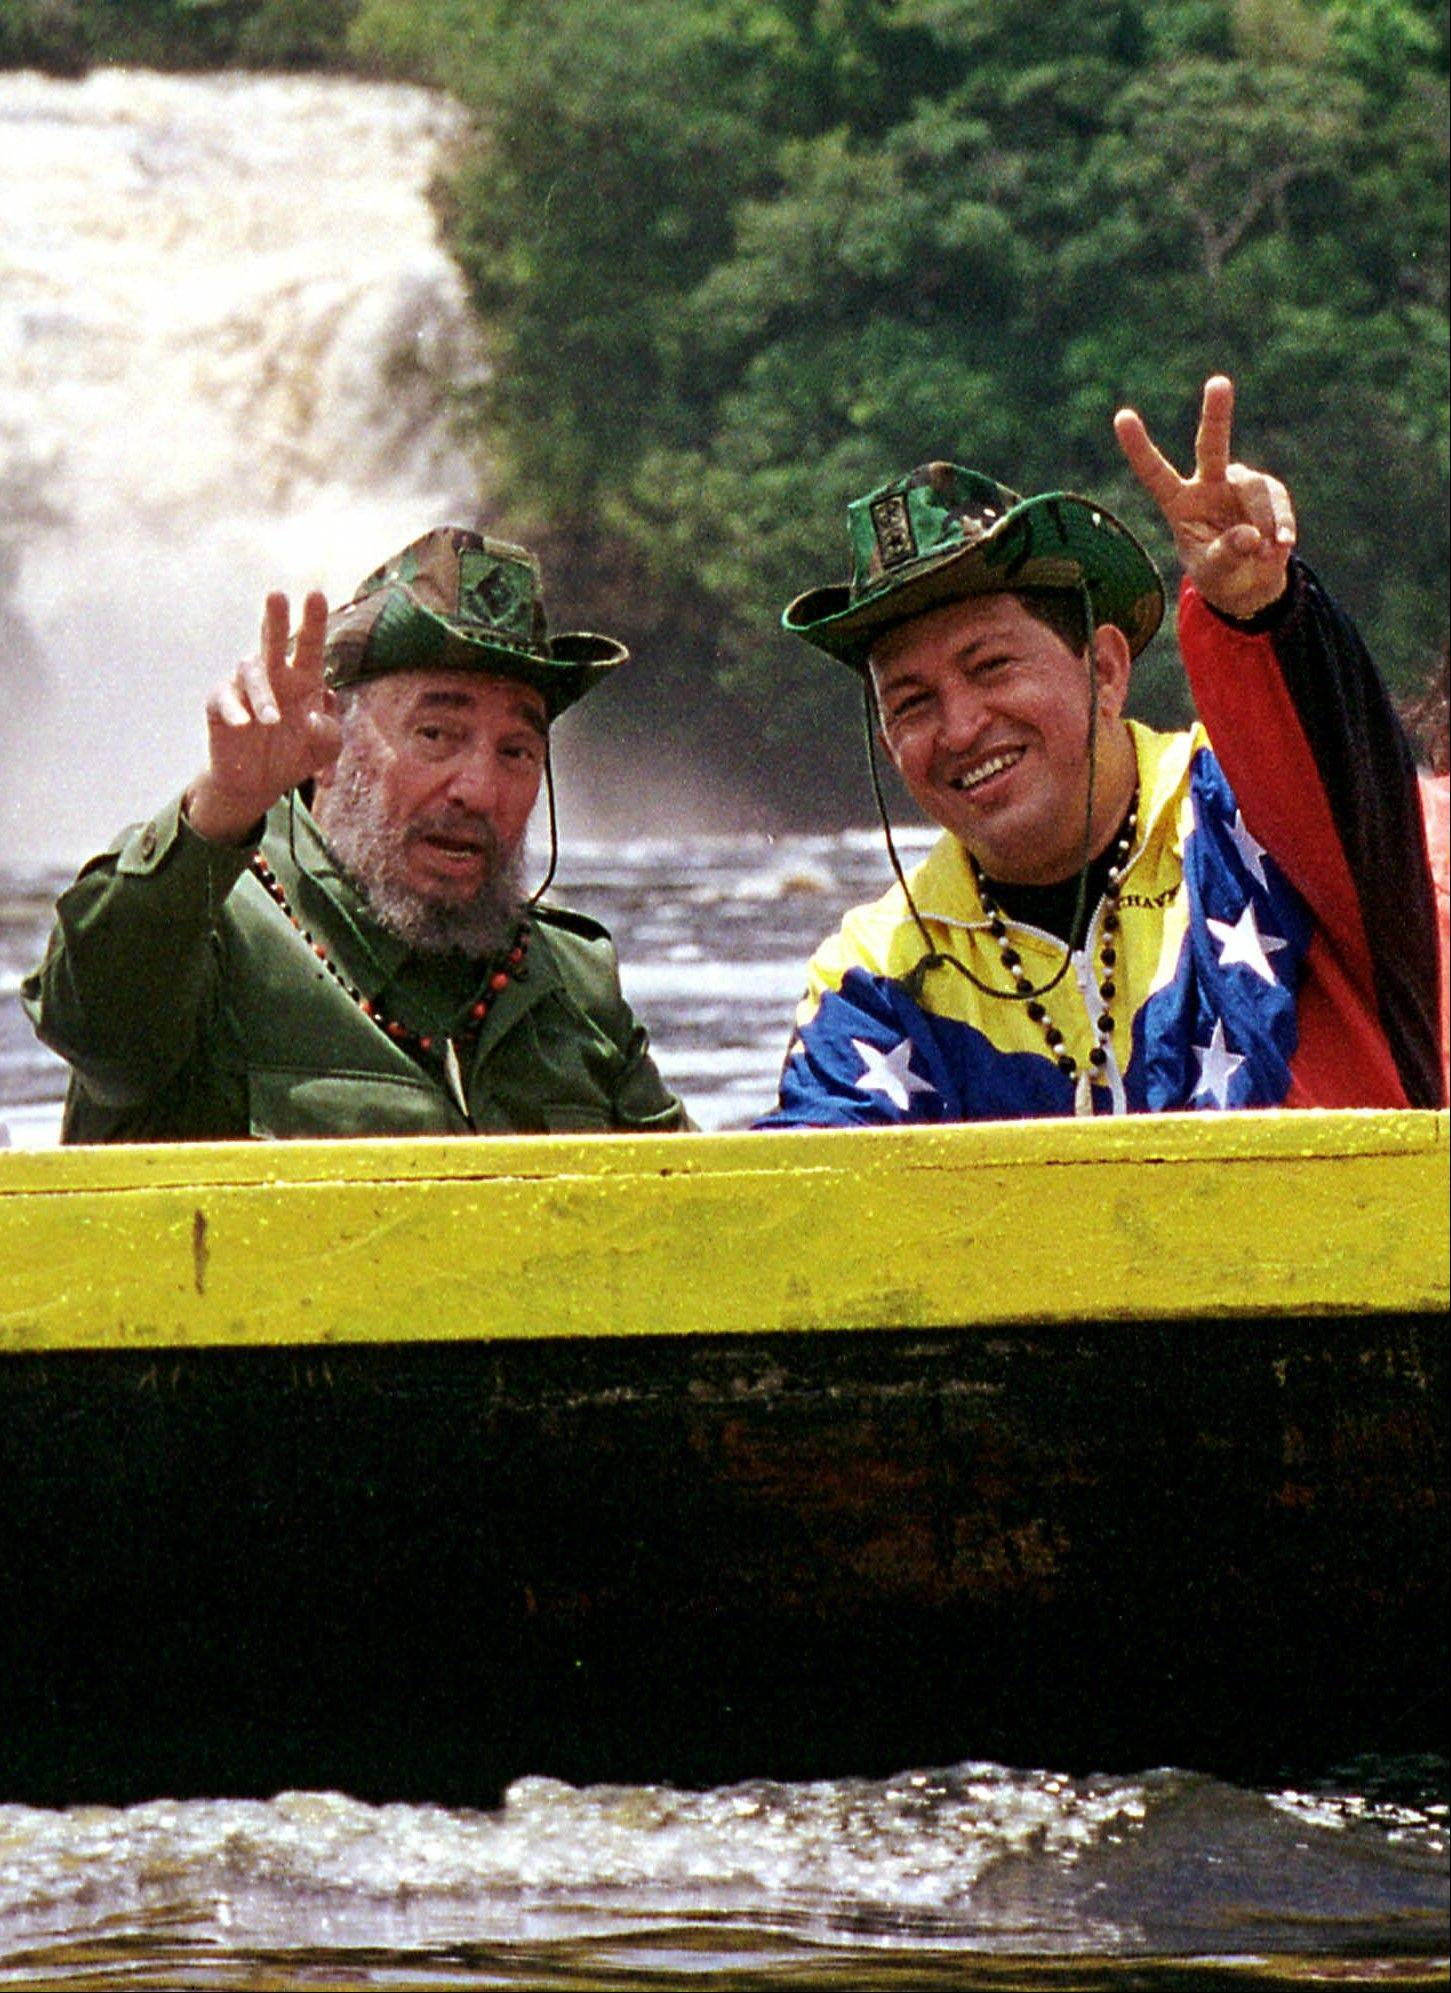 In this Aug. 12, 2001, photo, Cuban President Fidel Castro, left, and Venezuelan President Hugo Chavez wave to a crowd while touring Canaima National Park in eastern Venezuela in a canoe. Castro and Chavez celebrated the Cuban leader's 75th birthday a day early with a tour of Venezuelan sights, including Angel Falls.